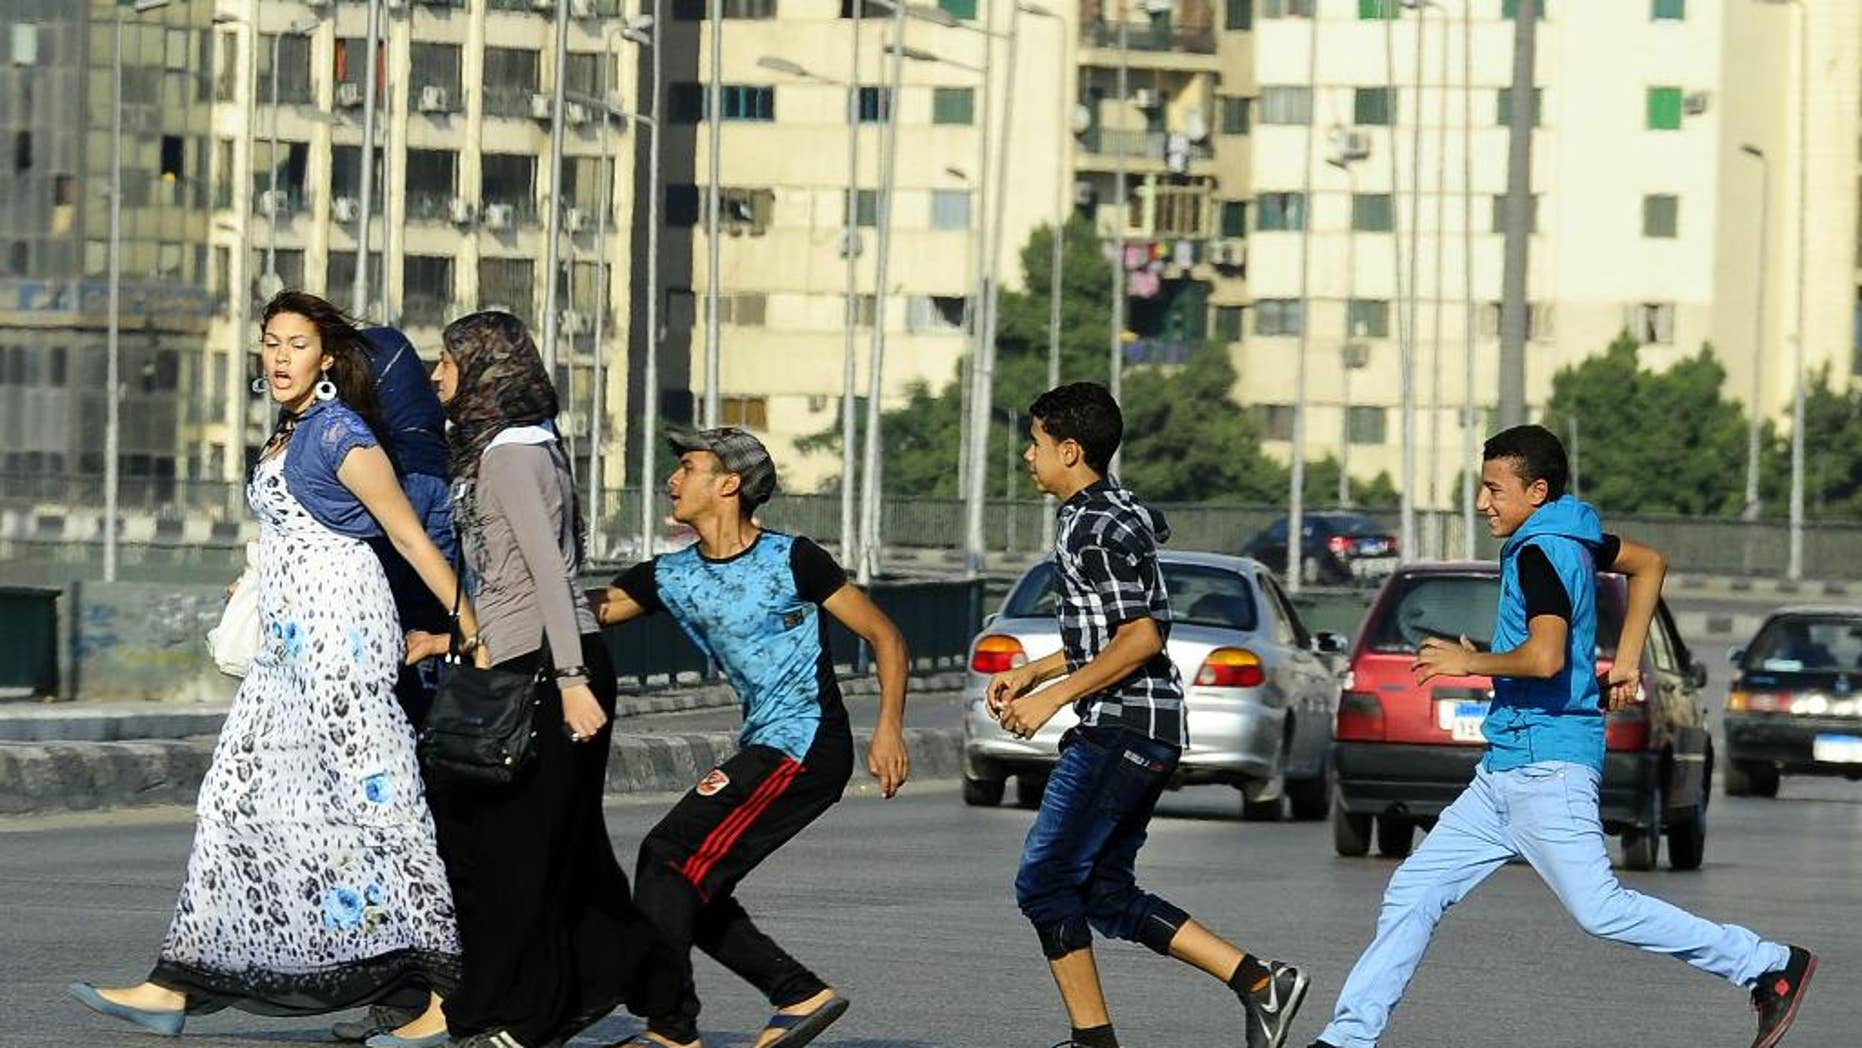 FILE -- In this Monday, Aug. 20, 2012 file photo, an Egyptian youth, trailed by his friends, gropes a woman crossing the street with her friends in Cairo, Egypt. Abdel-Fattah el-Sissi, Egypt's newly sworn-in president, has apologized in person to a woman who was sexually assaulted by a mob during weekend celebrations marking his inauguration. Several women were assaulted during the Sunday, June 8, 2014 inaugural festivities. (AP Photo/Ahmed Abd El Latif, El Shorouk Newspaper, File)   EGYPT OUT